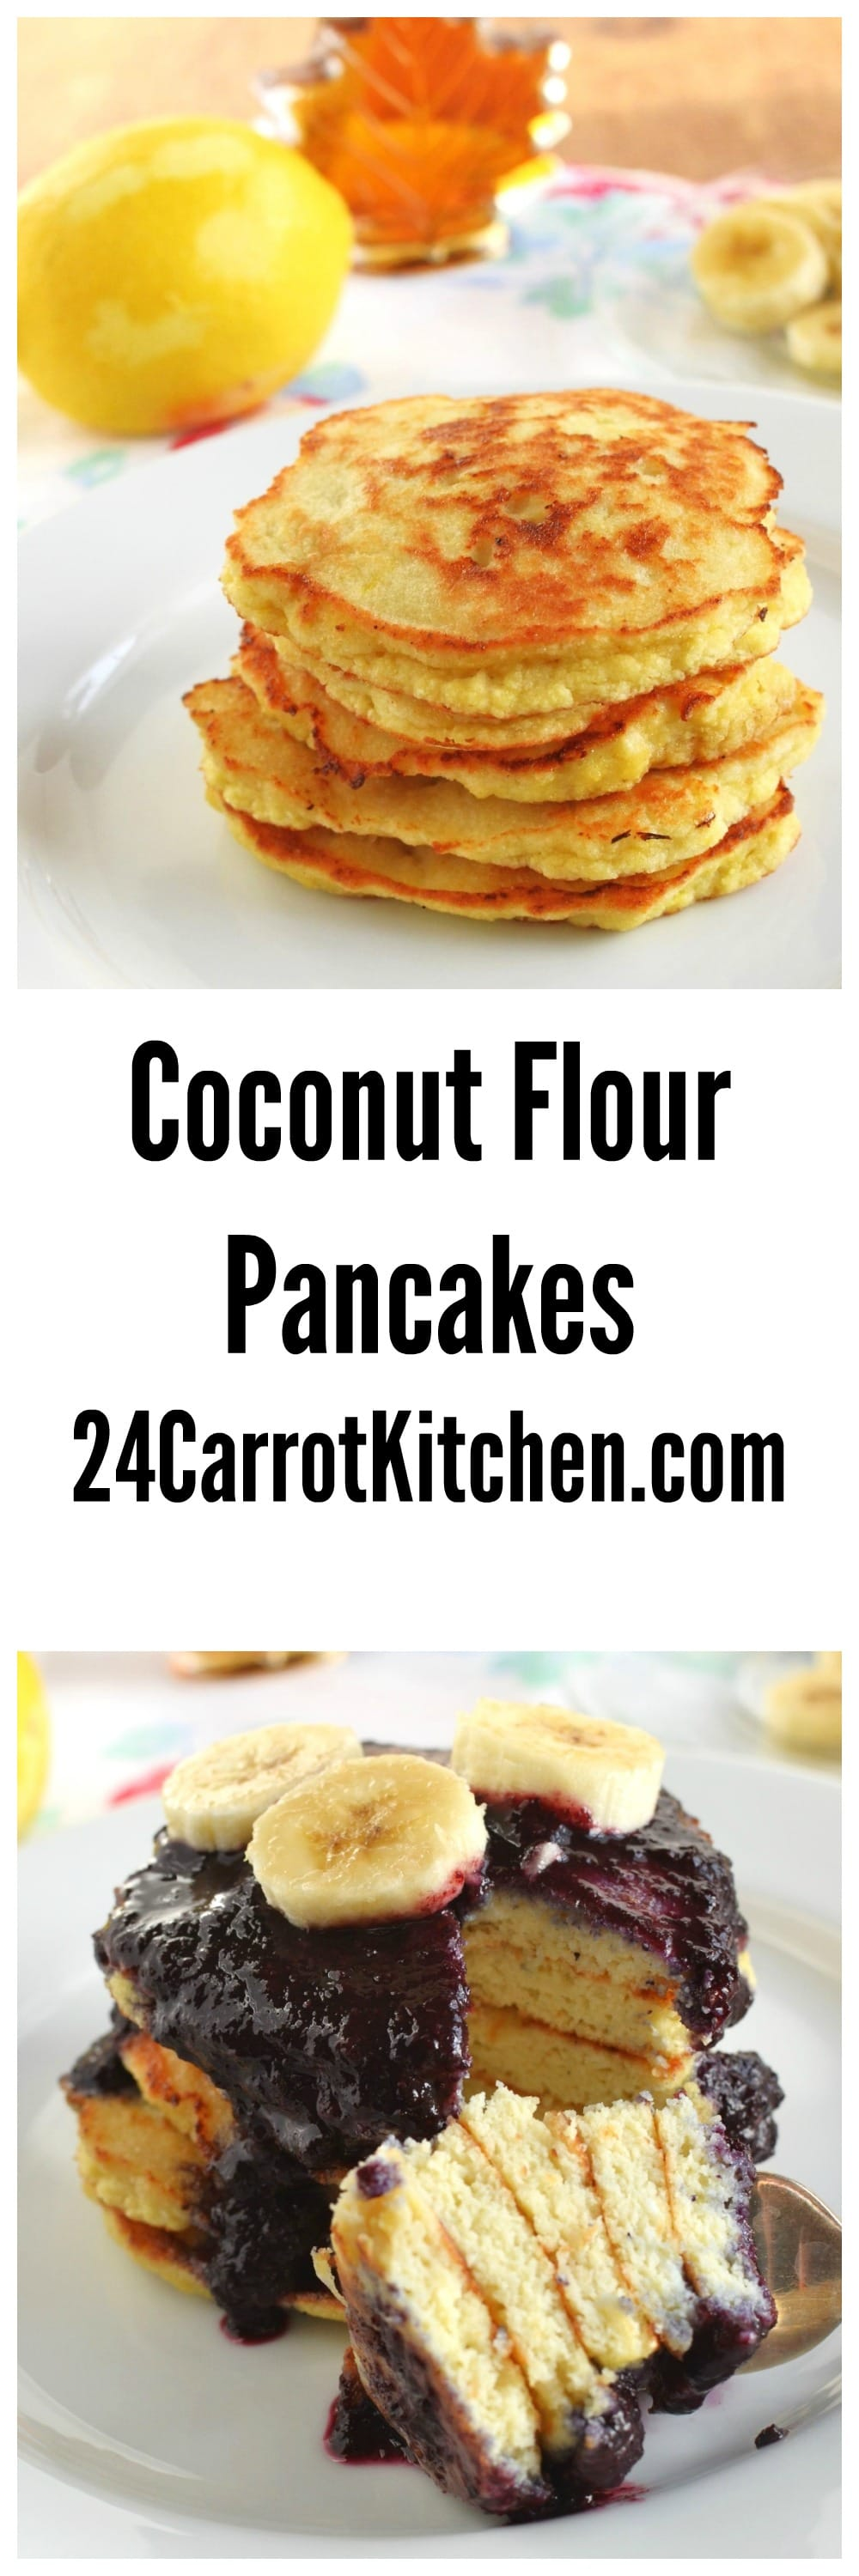 how to make pancakes qith coconut flour